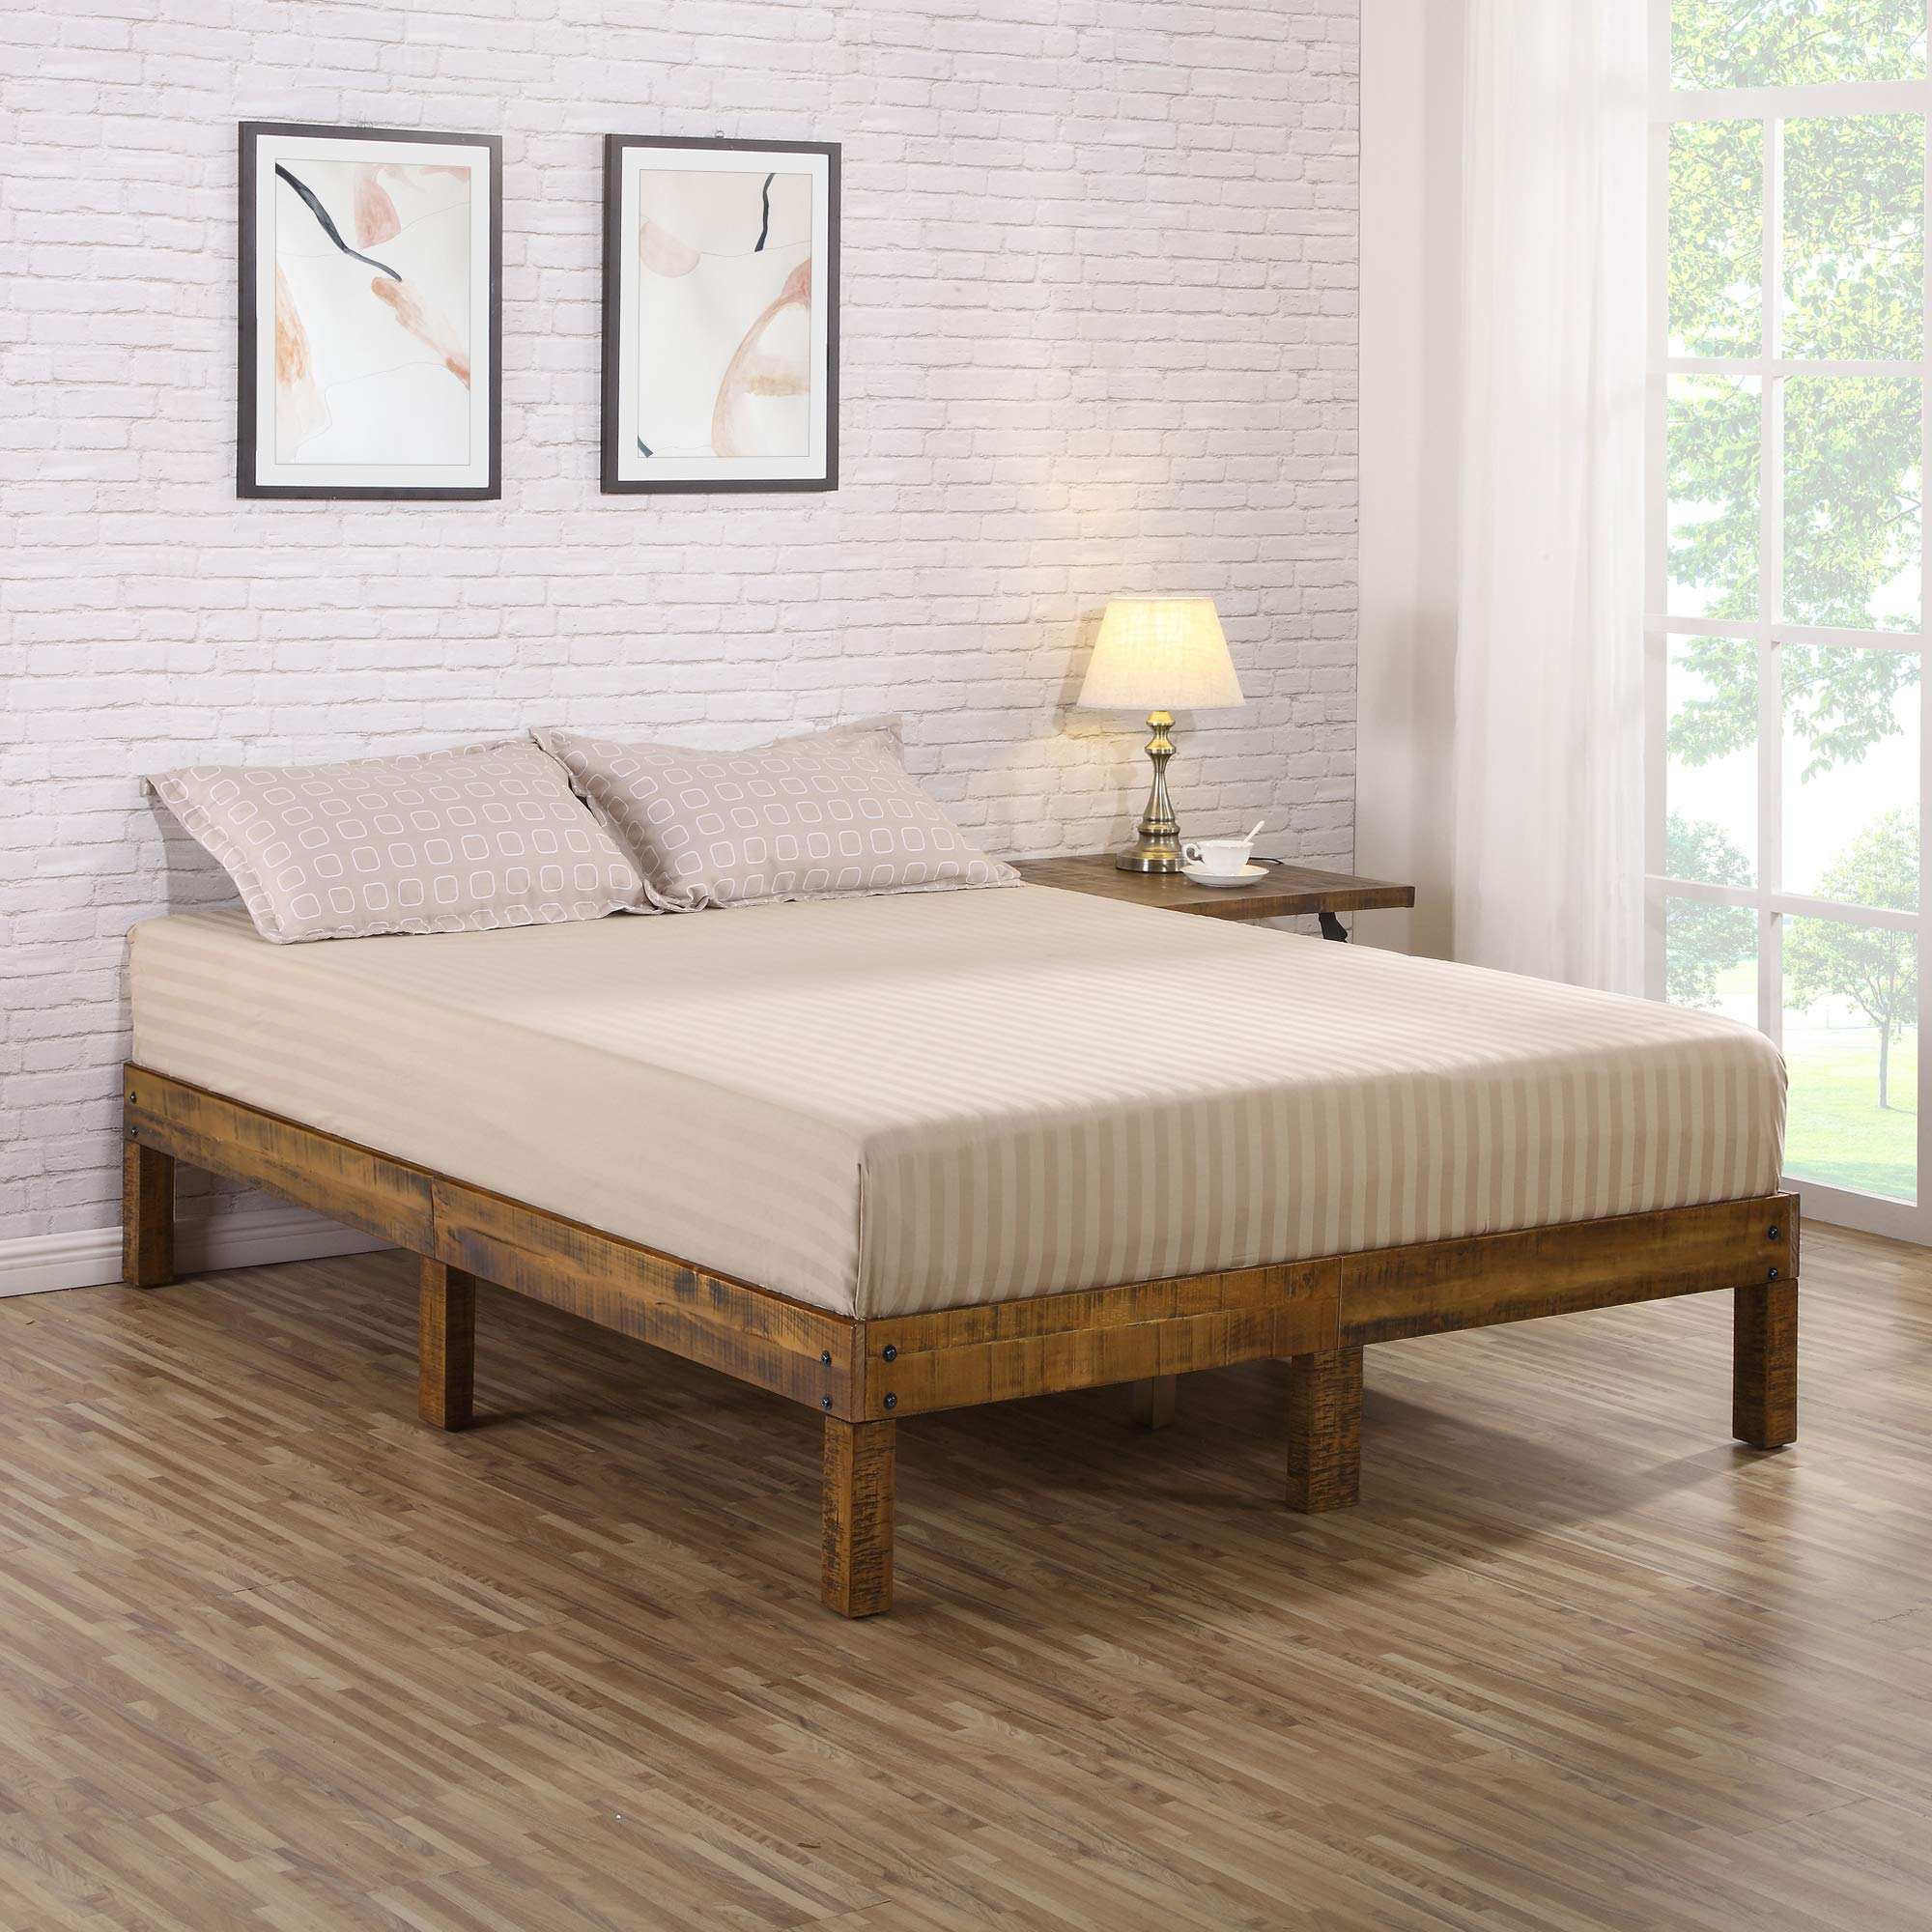 Olee Sleep VC14SF01Q-1 14 inch Solid Wood Platform Bed/Natural Finish, Queen, Brown